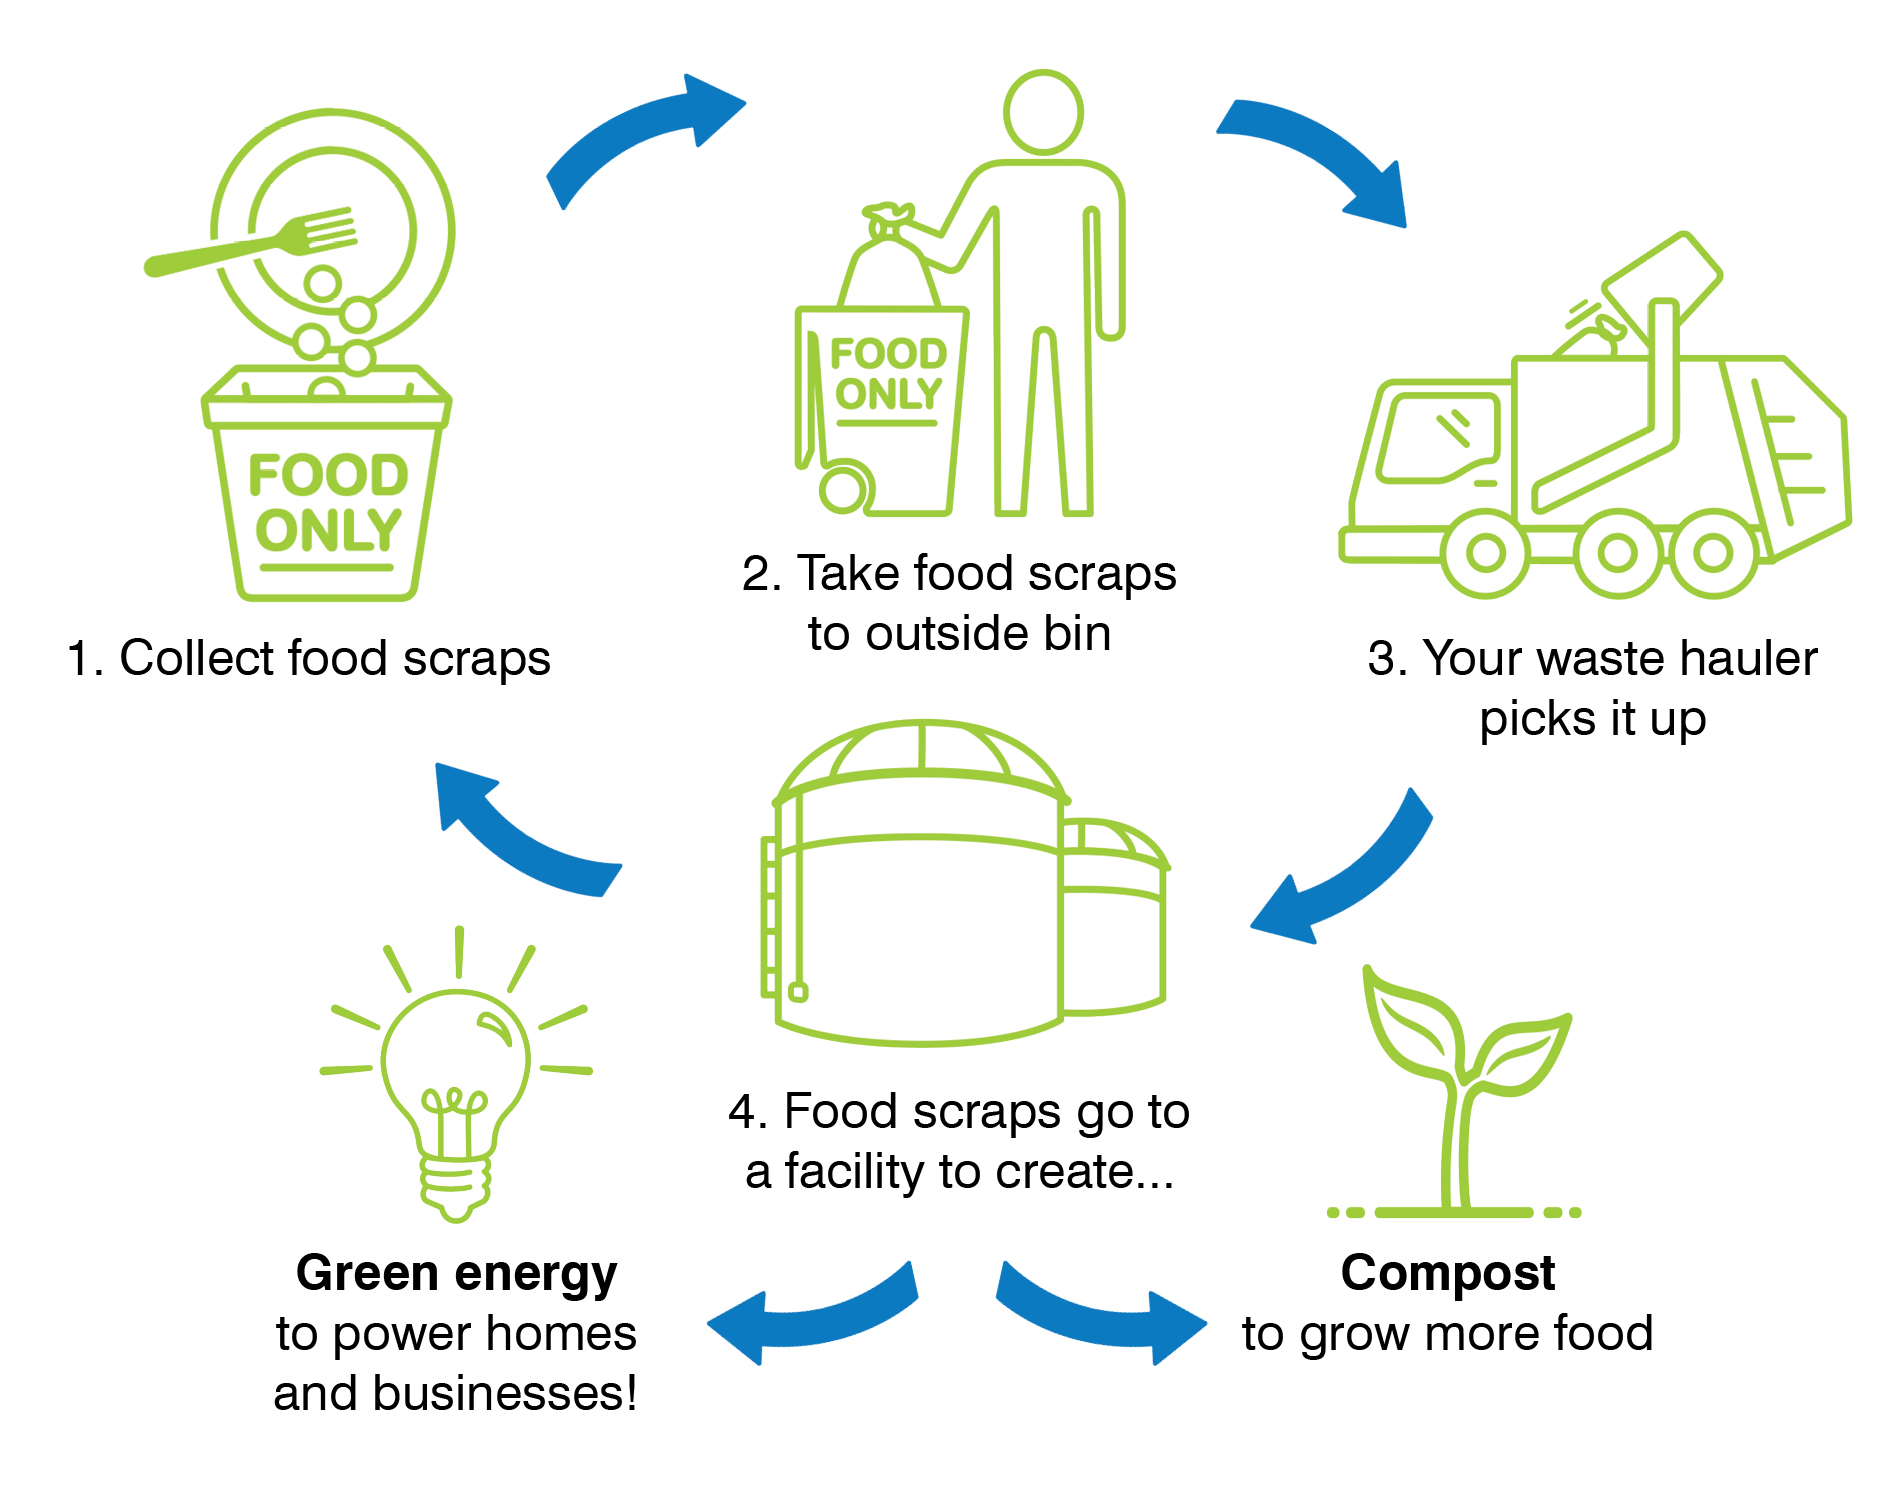 How Food Scraps Collection Works